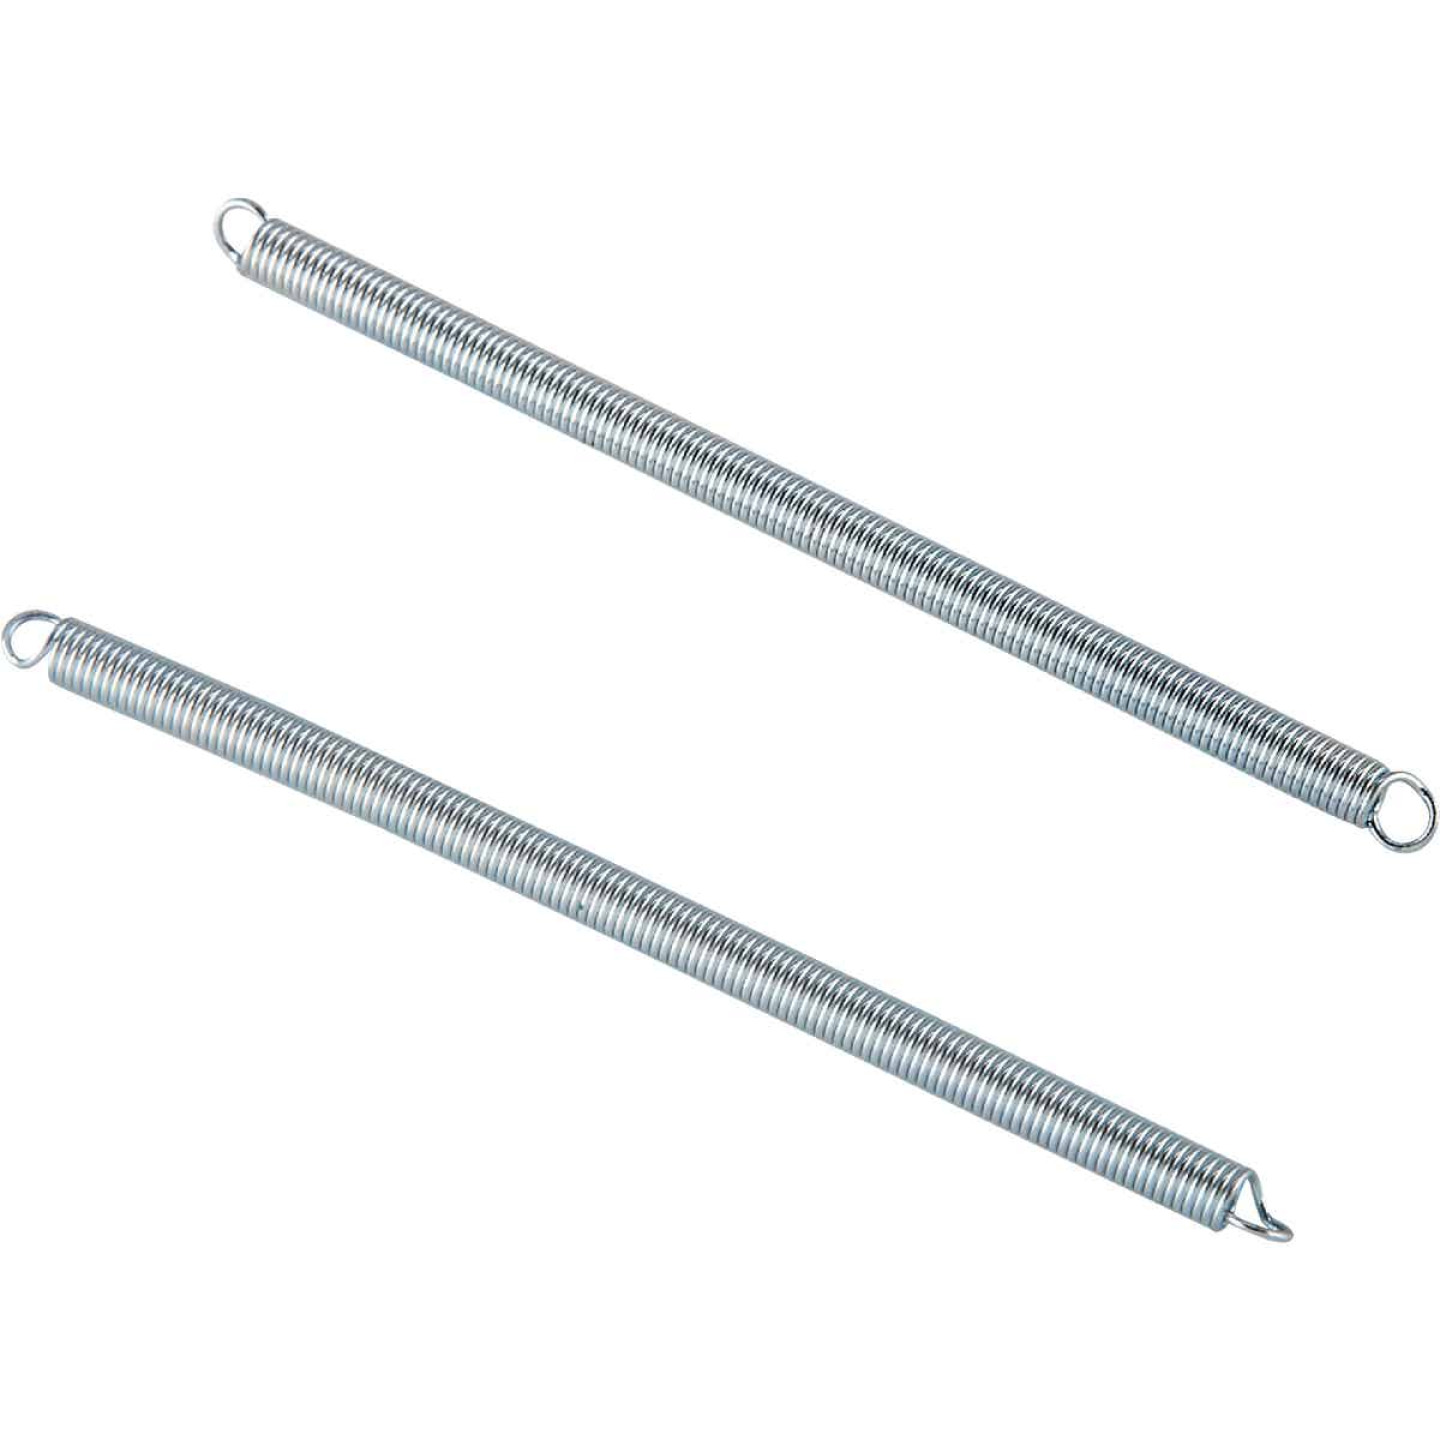 Century Spring 7 In. x 1 In. Extension Spring (1 Count) Image 1